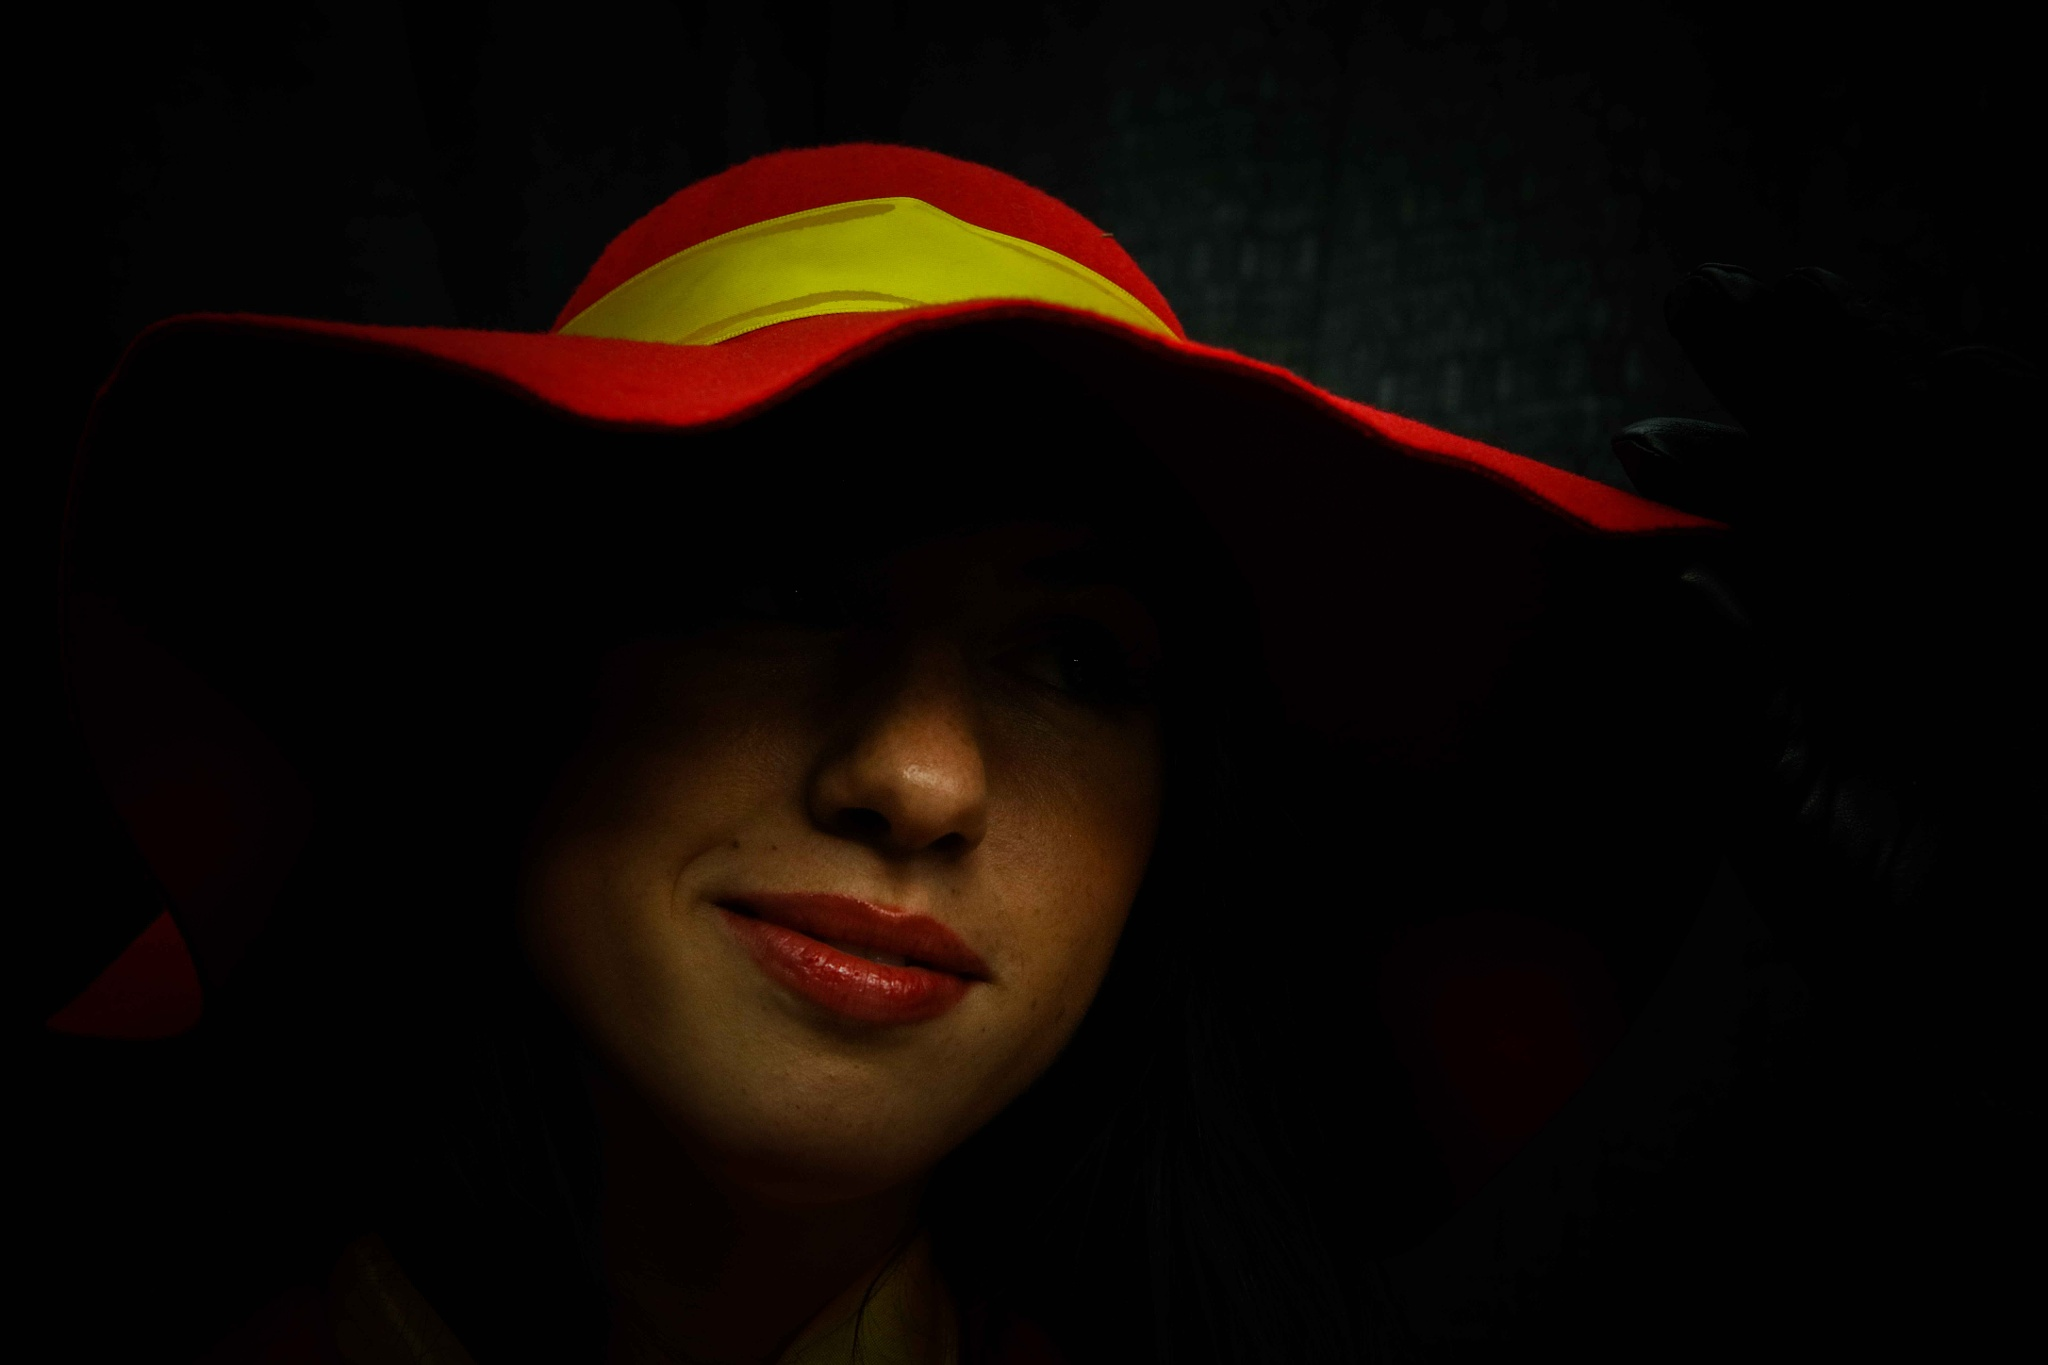 Woman In The Red Hat by VAMPhotography